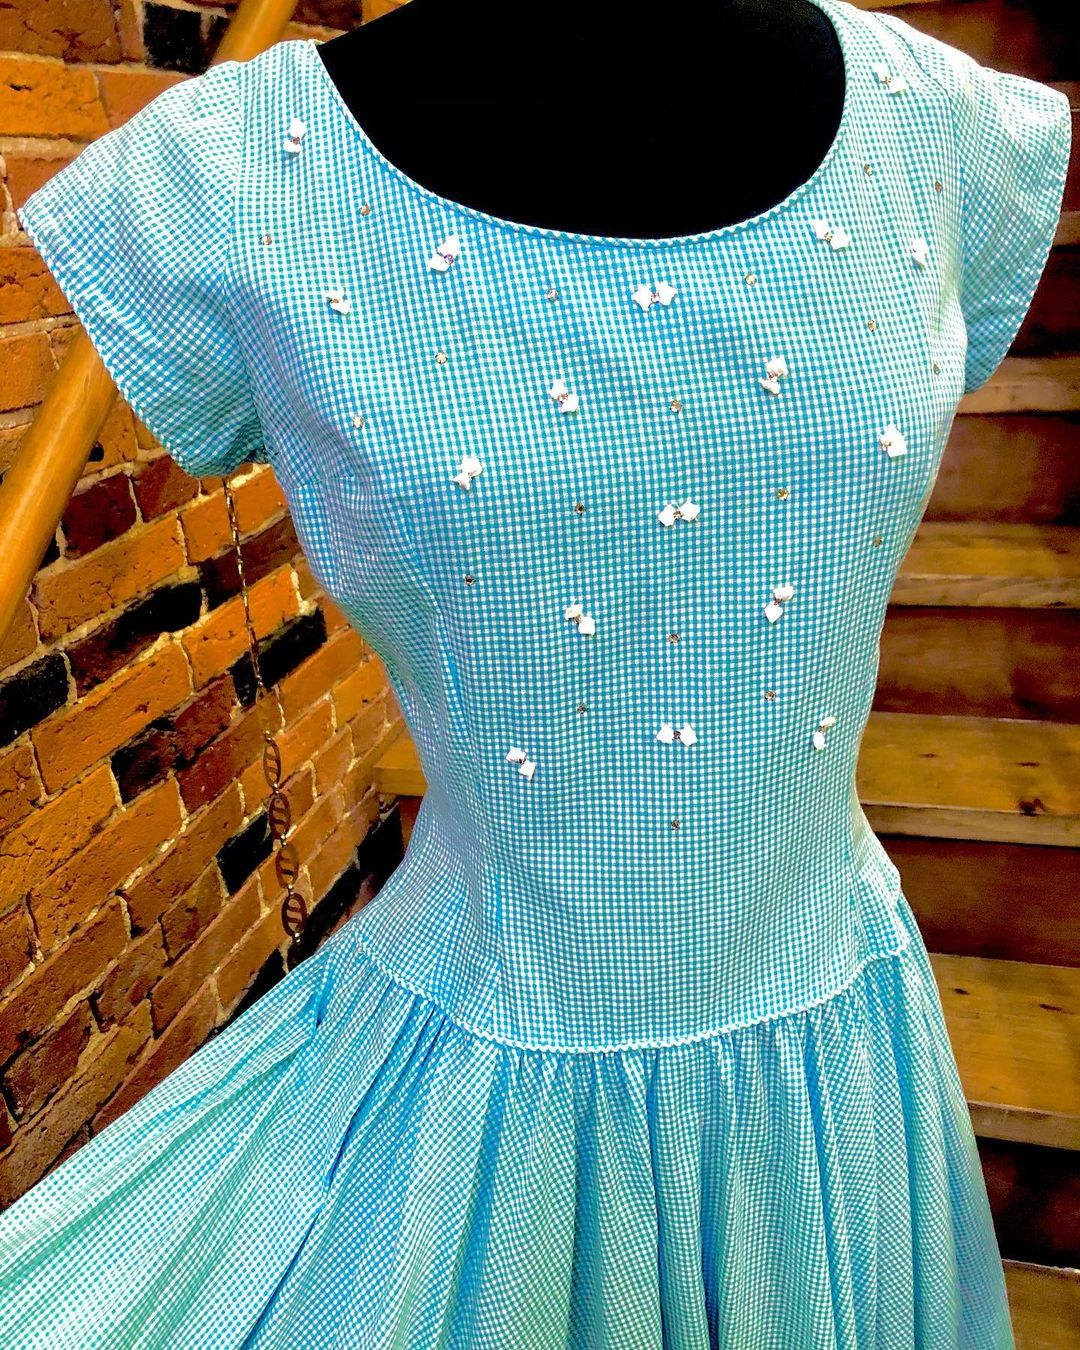 1950s Sky Blue & White Gingham Dress